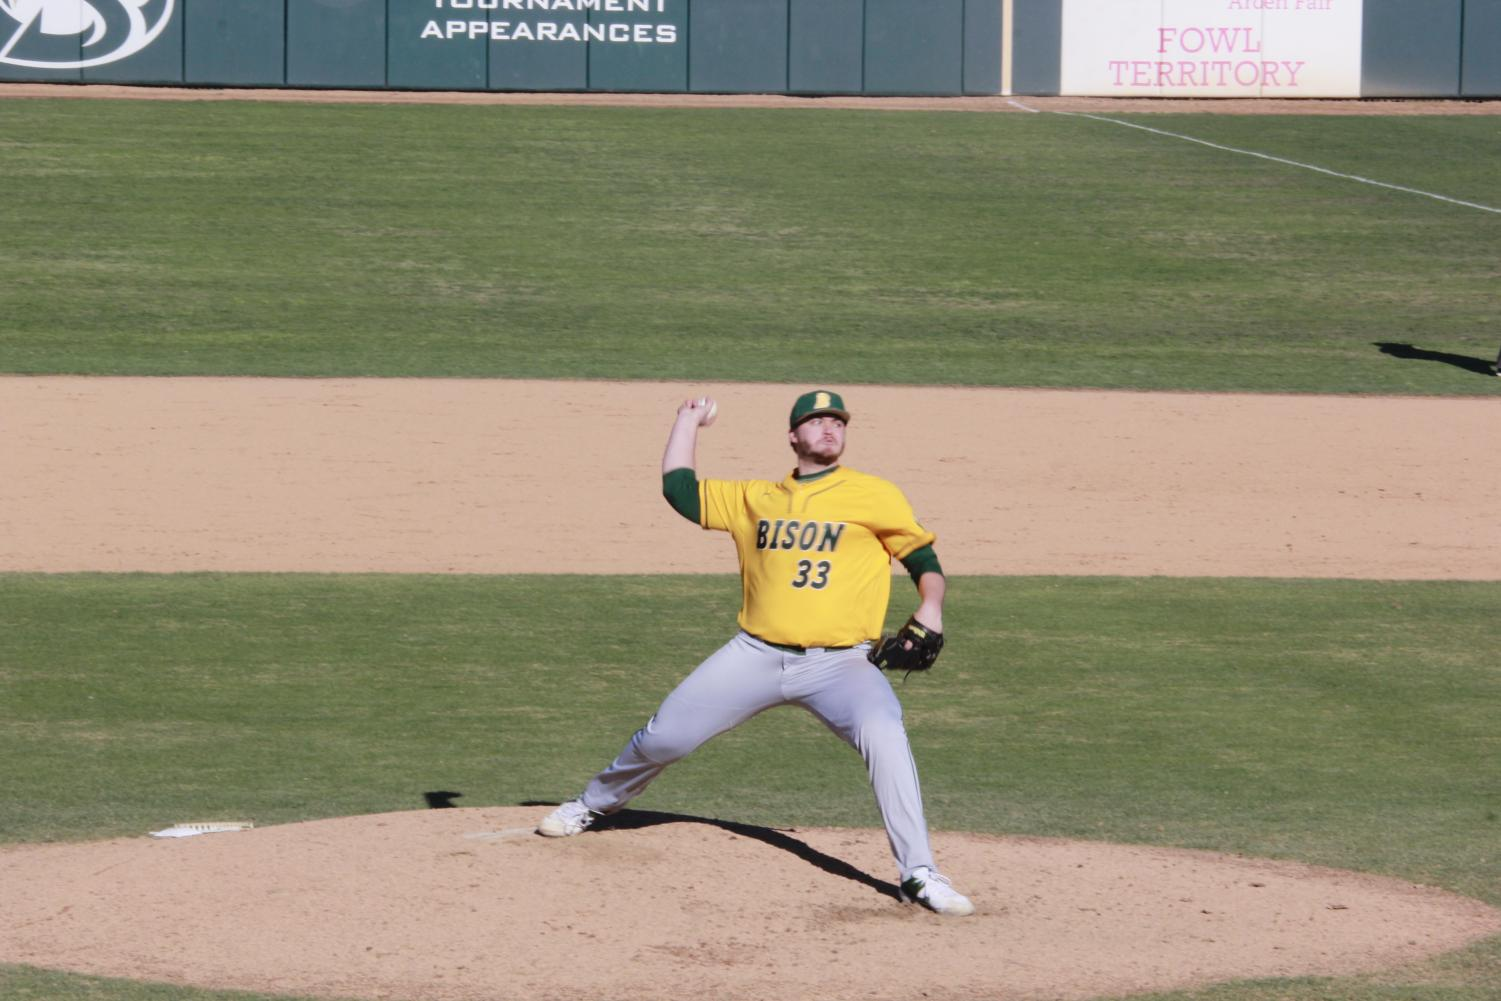 North+Dakota+St.+sophomore+pitcher+Hunter+Koep+throws+a+pitch+in+a+2-1+loss+to+Sac+State+on+Sunday%2C+Feb.+17+at+John+Smith+Field.